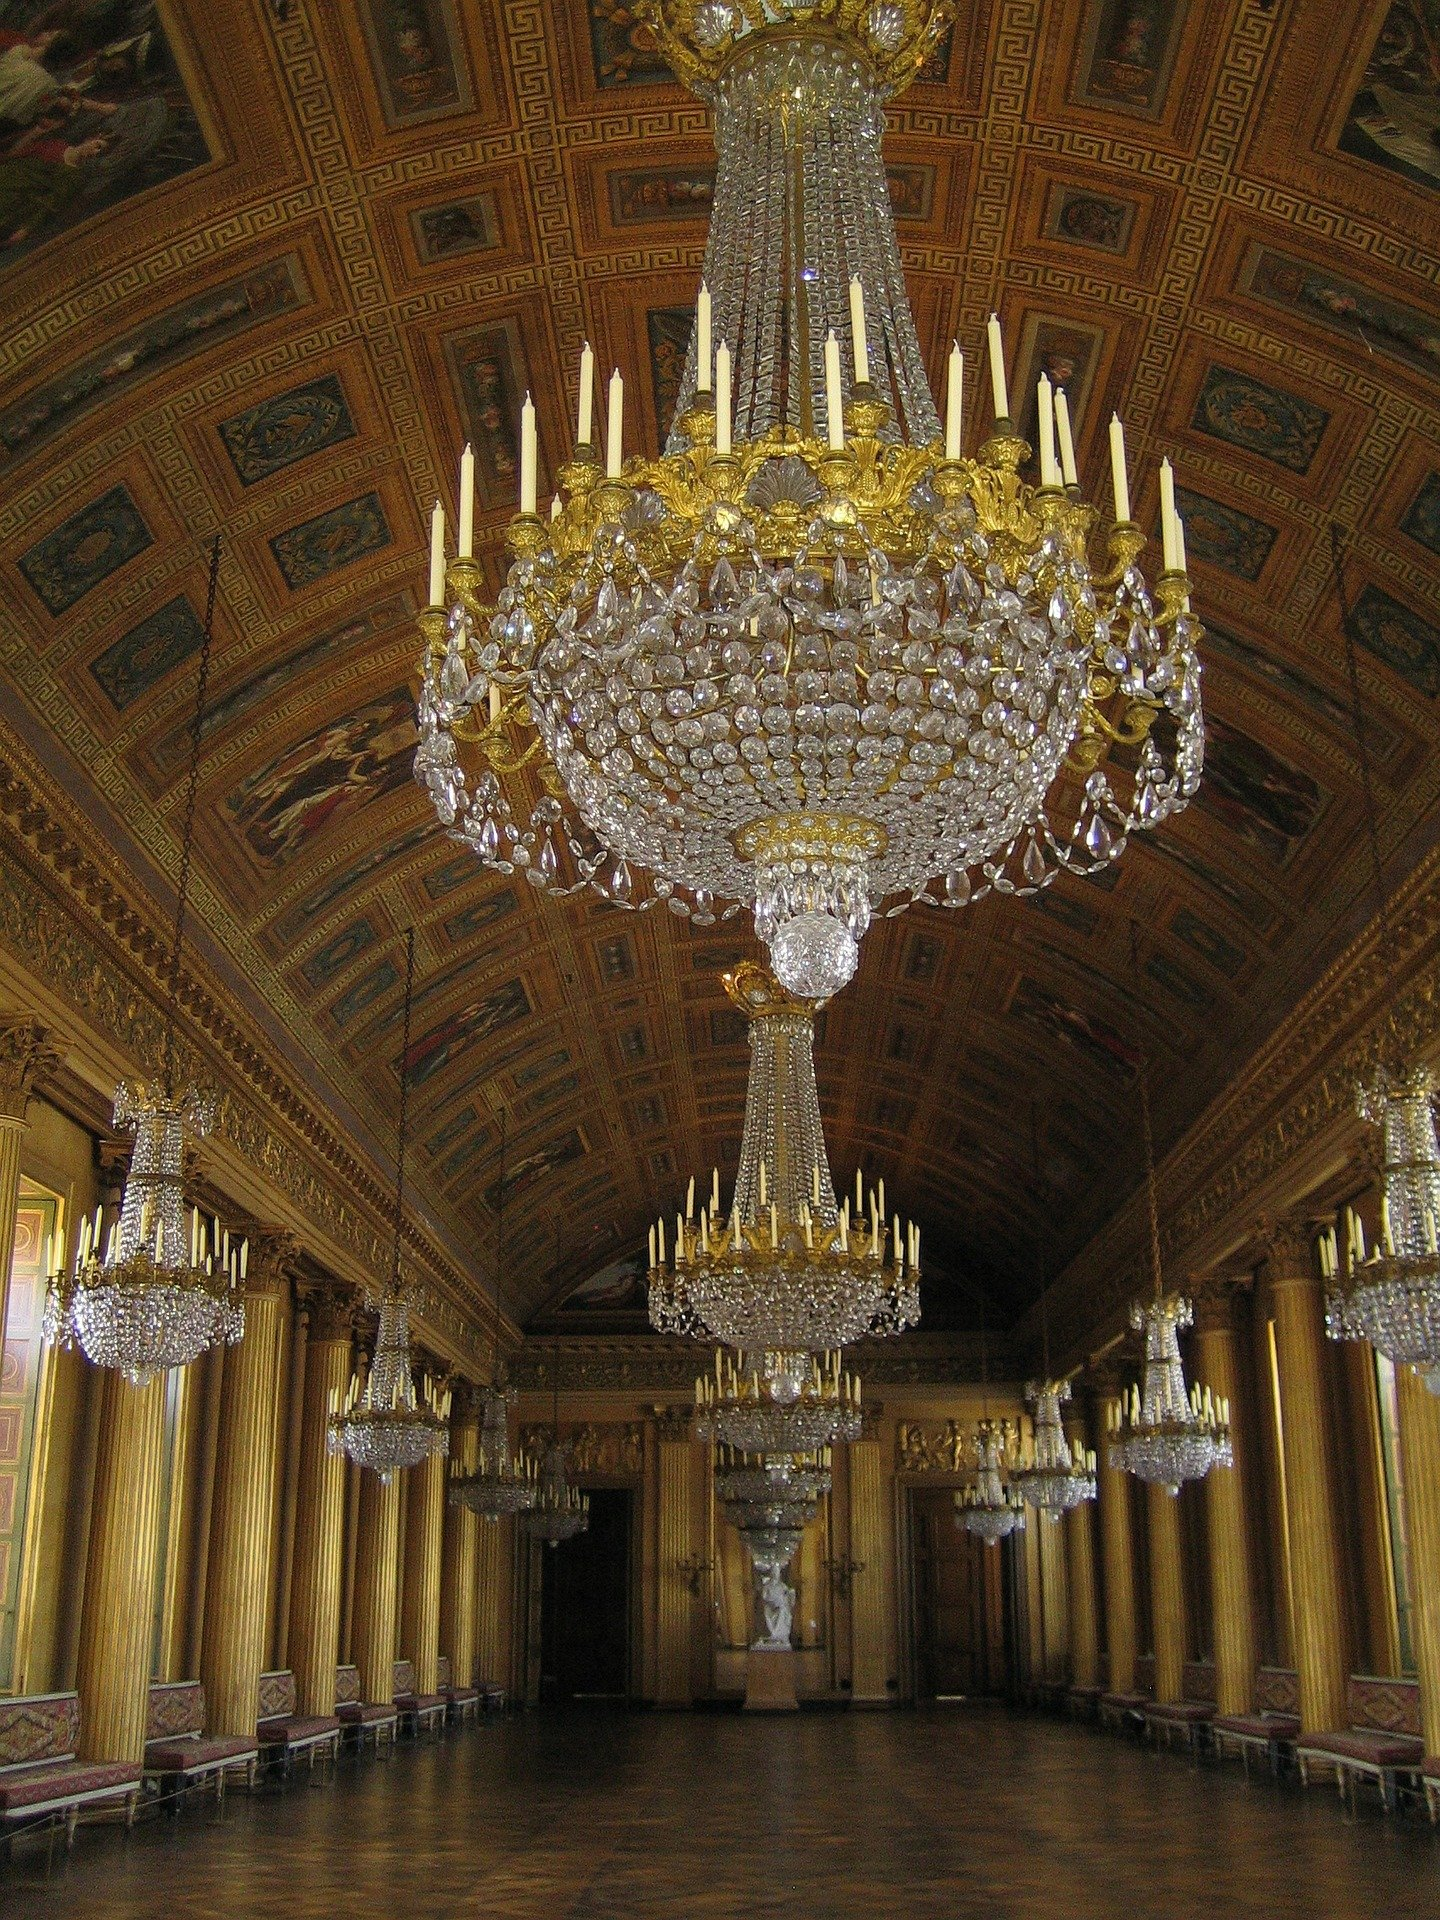 The ceiling was adorned with beautiful sparkling chandeliers.   Photo: Pixabay